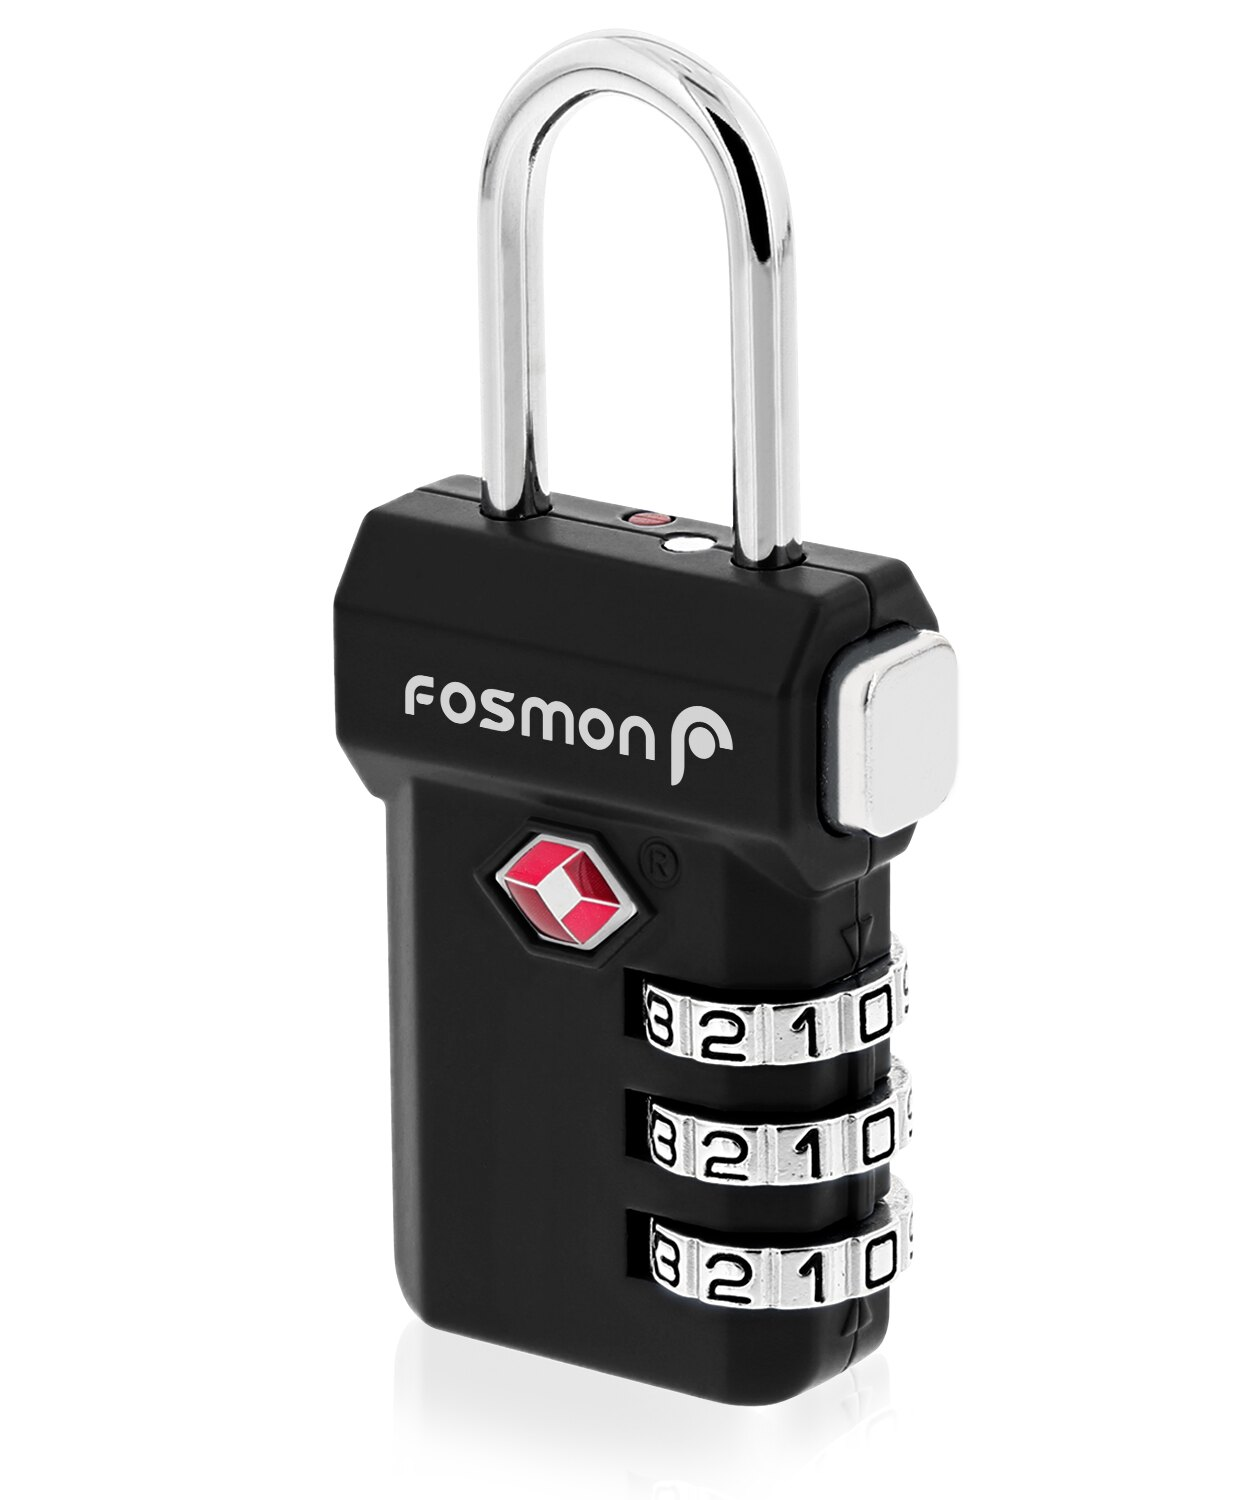 e4190fe83aa9 Fosmon Open Alert Indicator TSA Approved 3 Digit Combination Luggage Lock -  Black